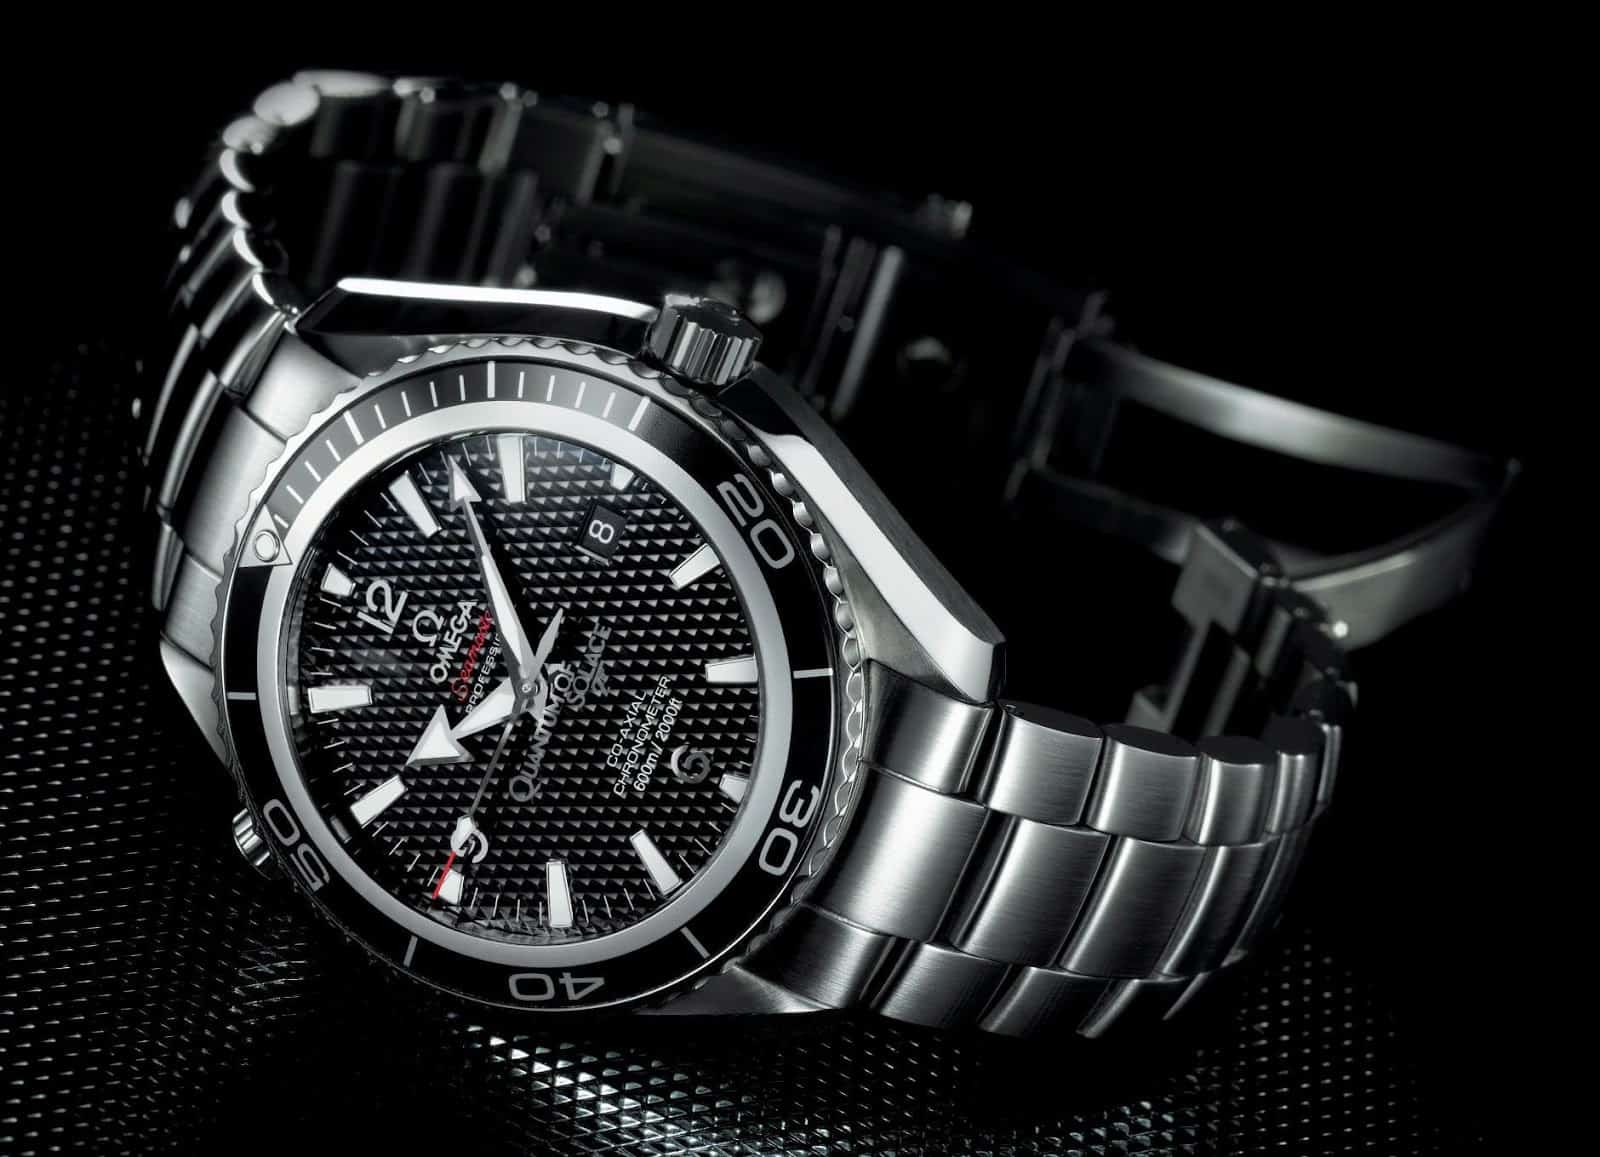 Omega Seamaster Planet Ocean Quantum of Solace Limited Edition